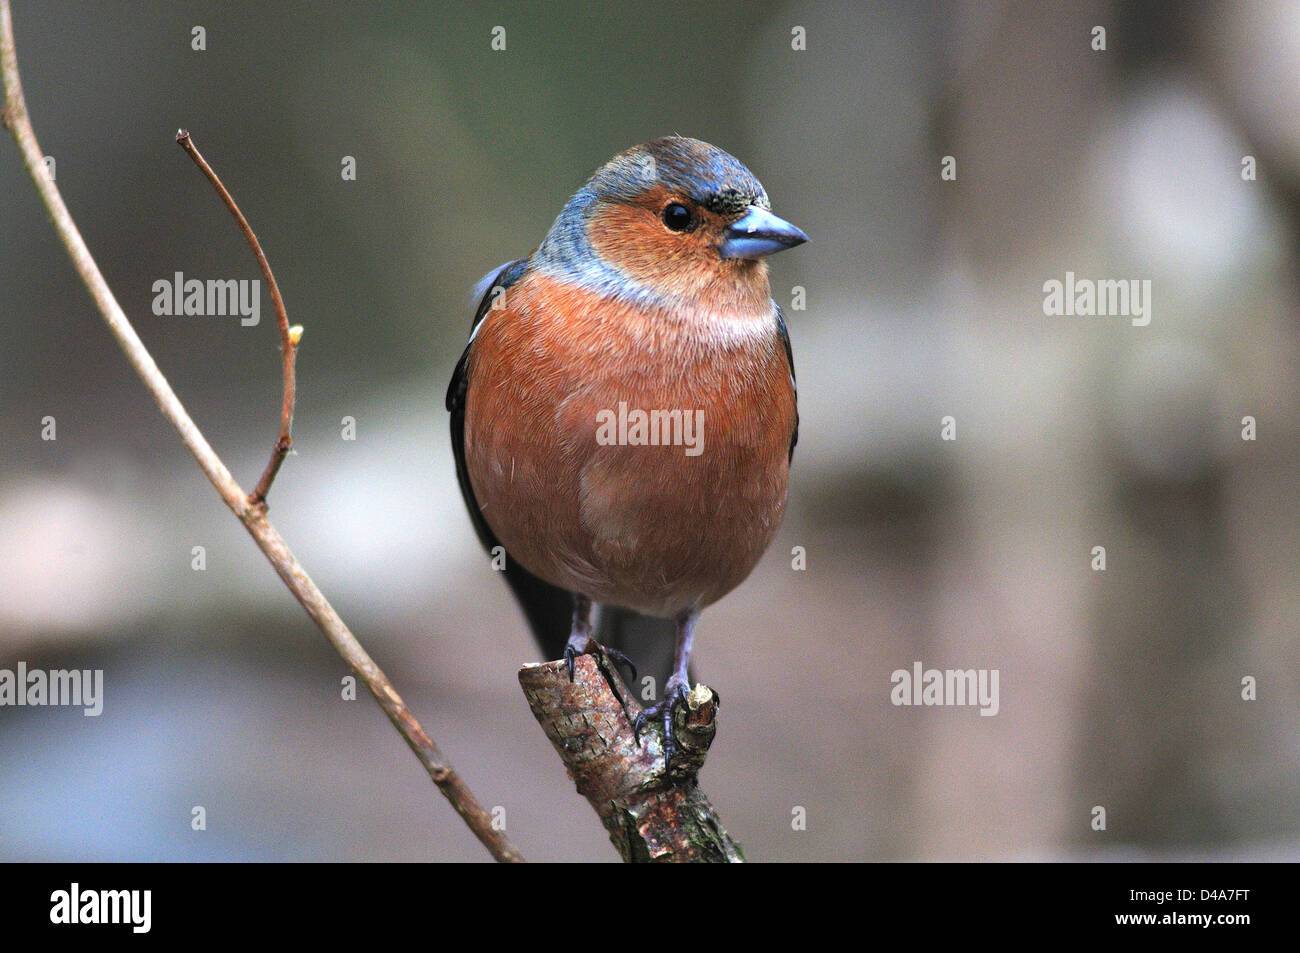 A male chaffinch - Stock Image